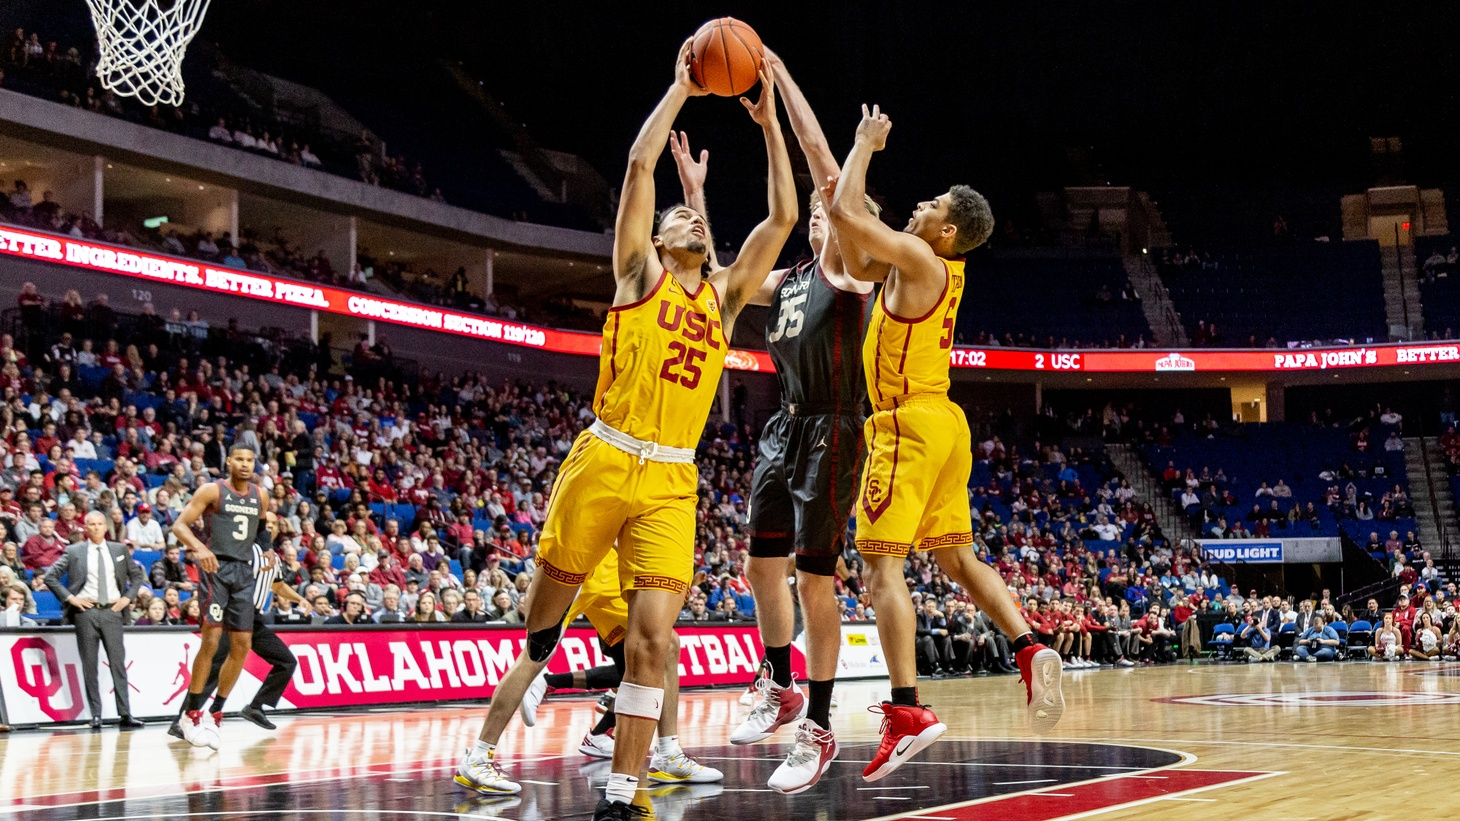 During an NCAA basketball game between USC and Ohio University, Tulsa, USC forward Bennie Boatwright (25) grabs the rebound against OU forward Brady Manek (35). December 15, 2018. The Supreme Court ruled on June 21, 2021 that colleges can't ban athletes from receiving small education-related payouts.